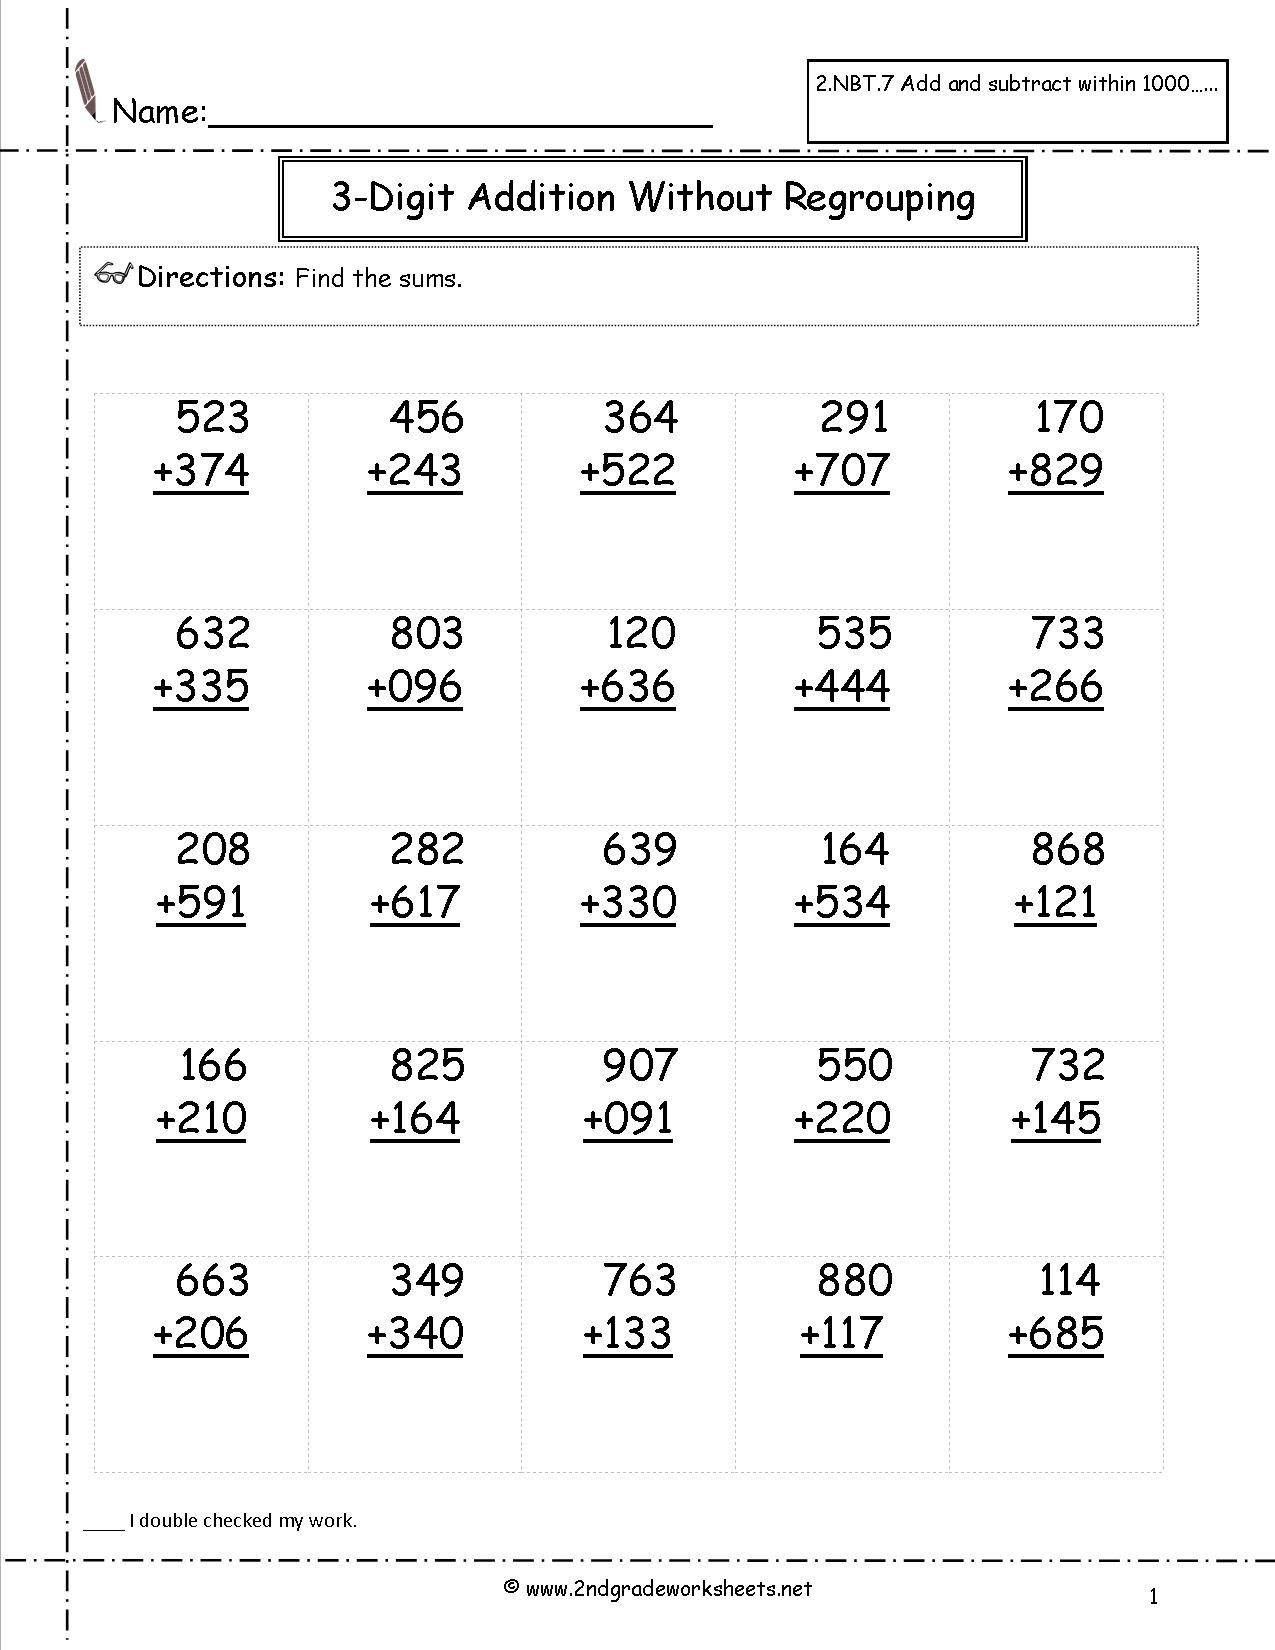 hight resolution of 4 Free Math Worksheets Second Grade 2 Subtraction Subtract 2 Digit Numbers  No Regrouping - apocalomegaproductions.com